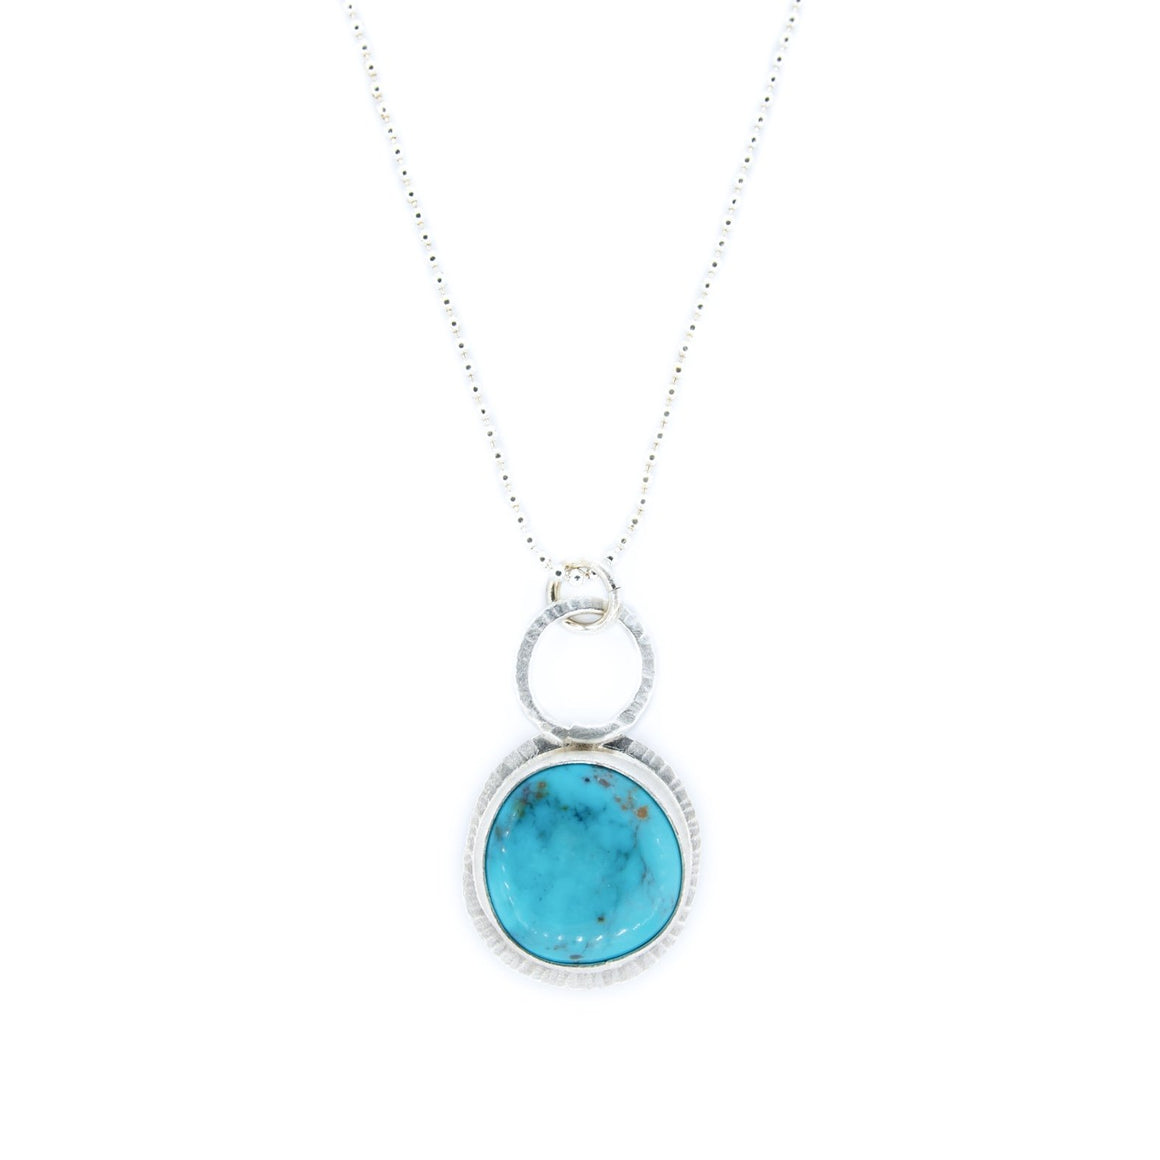 Turquoise and Silver Pendant by Original Sin Jewelry